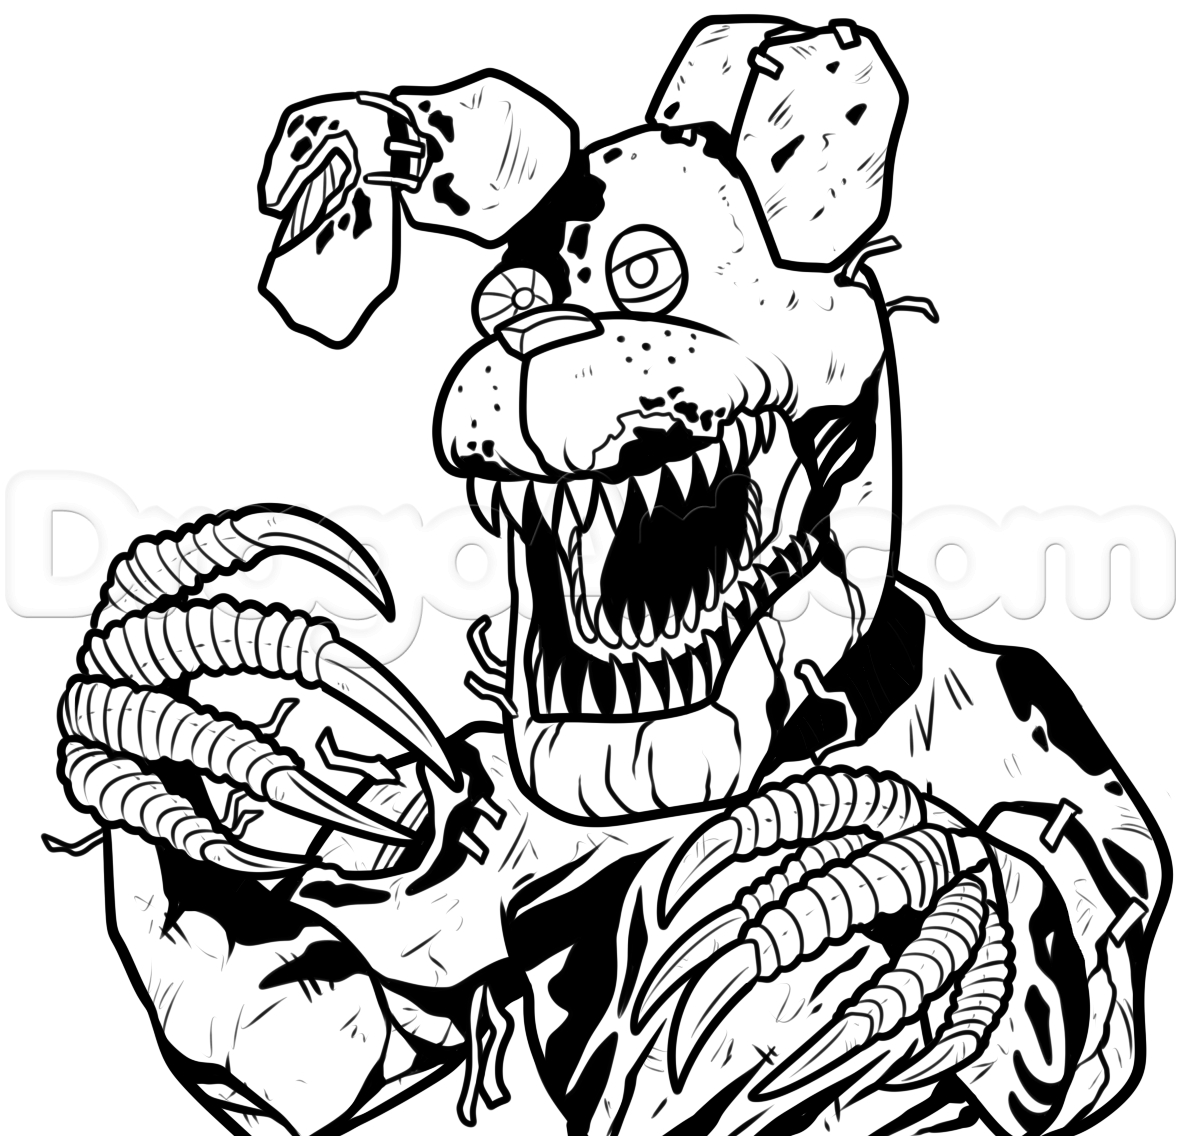 √ 24 Five Nights at Freddy's Coloring Page in 2020 | Fnaf ... | 1136x1181